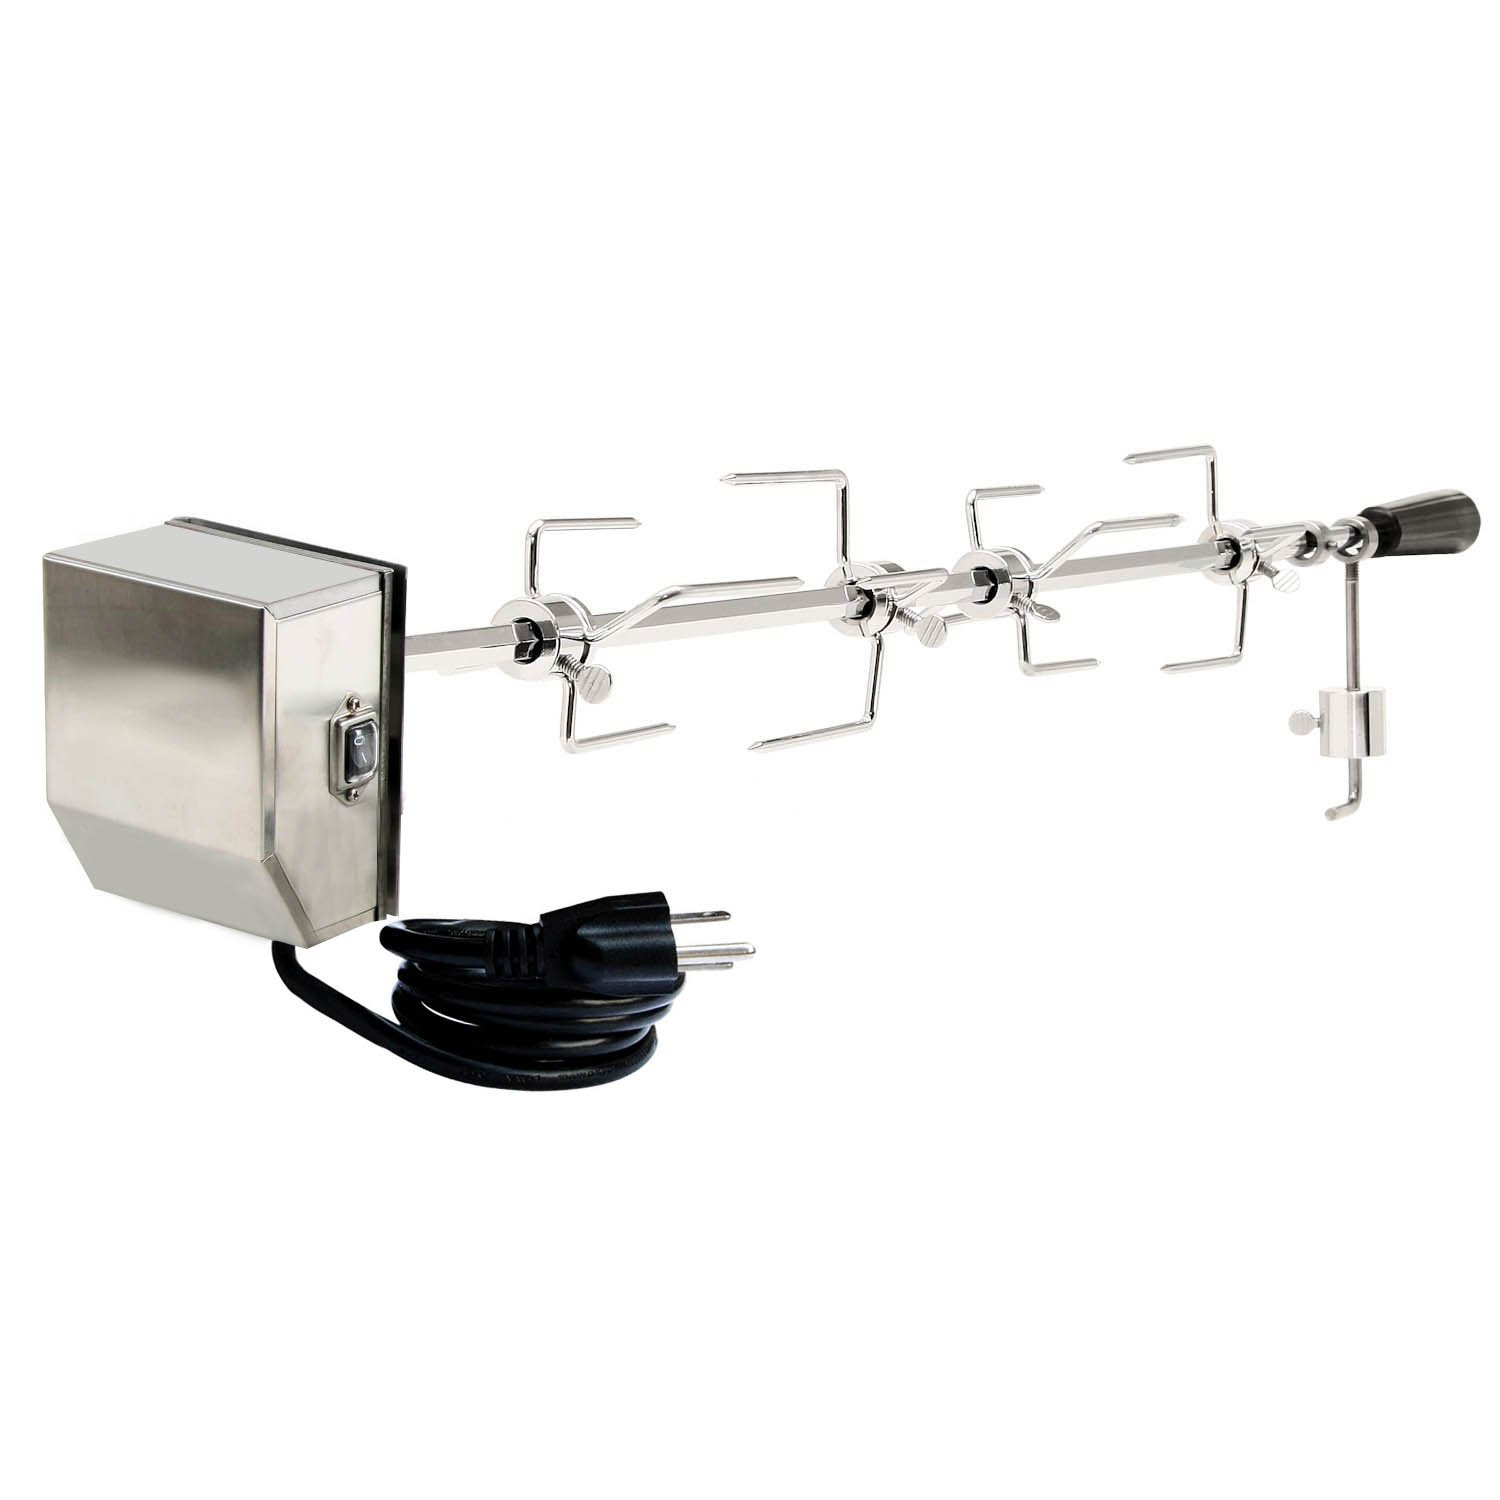 Onlyfire Universal Grill Replacement Rotisserie Kit - 45'' & 53'' X 1/2'' Hexagon Spit Rod, Stainless Steel Electric Motor